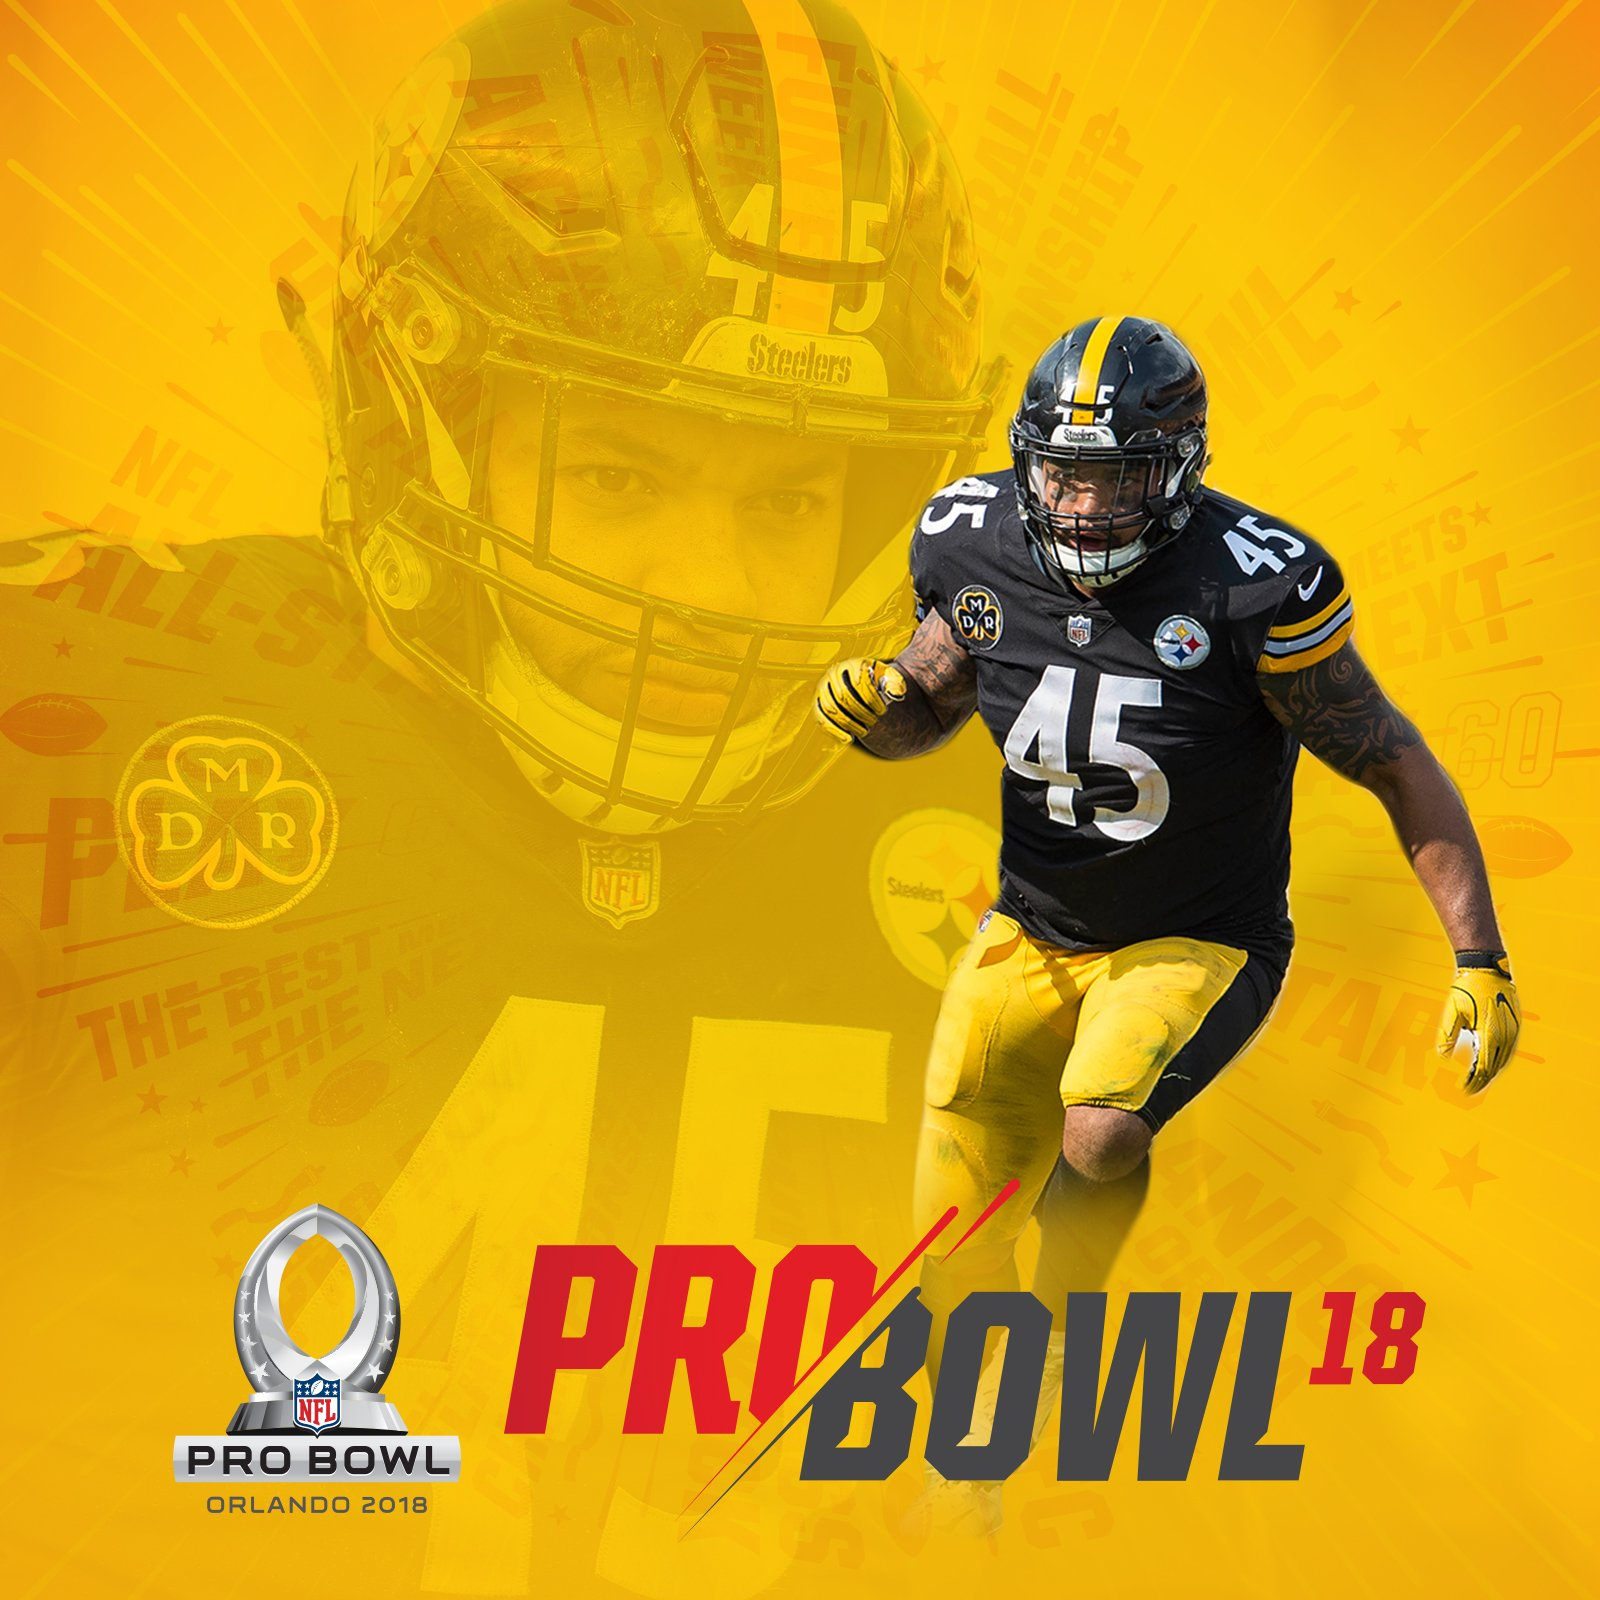 Roosevelt Nix has been named to the 2018 #ProBowl.  MORE: https://t.co/ePGyq5SBzI https://t.co/Dsz9ZKSRno